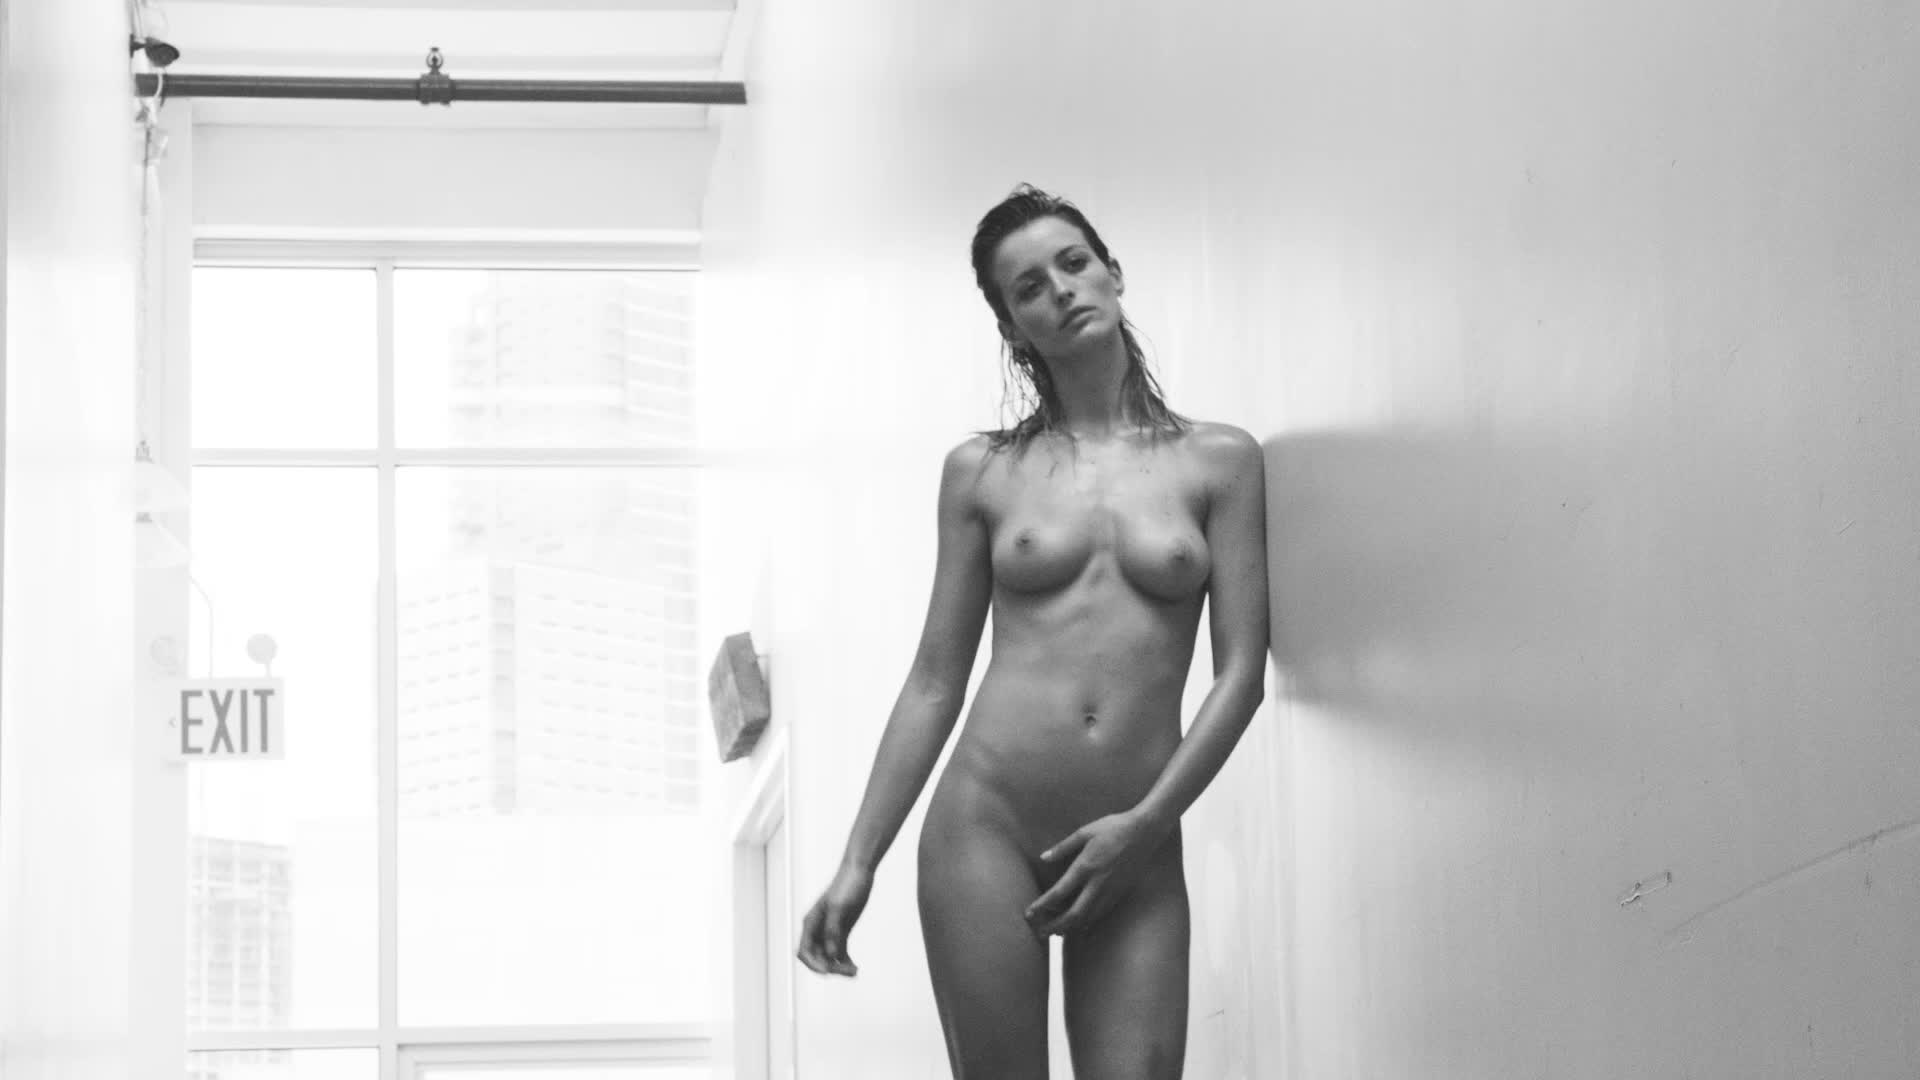 Flavia Lucini & Samantha Gradoville by David Bellemere for Lui Magazine